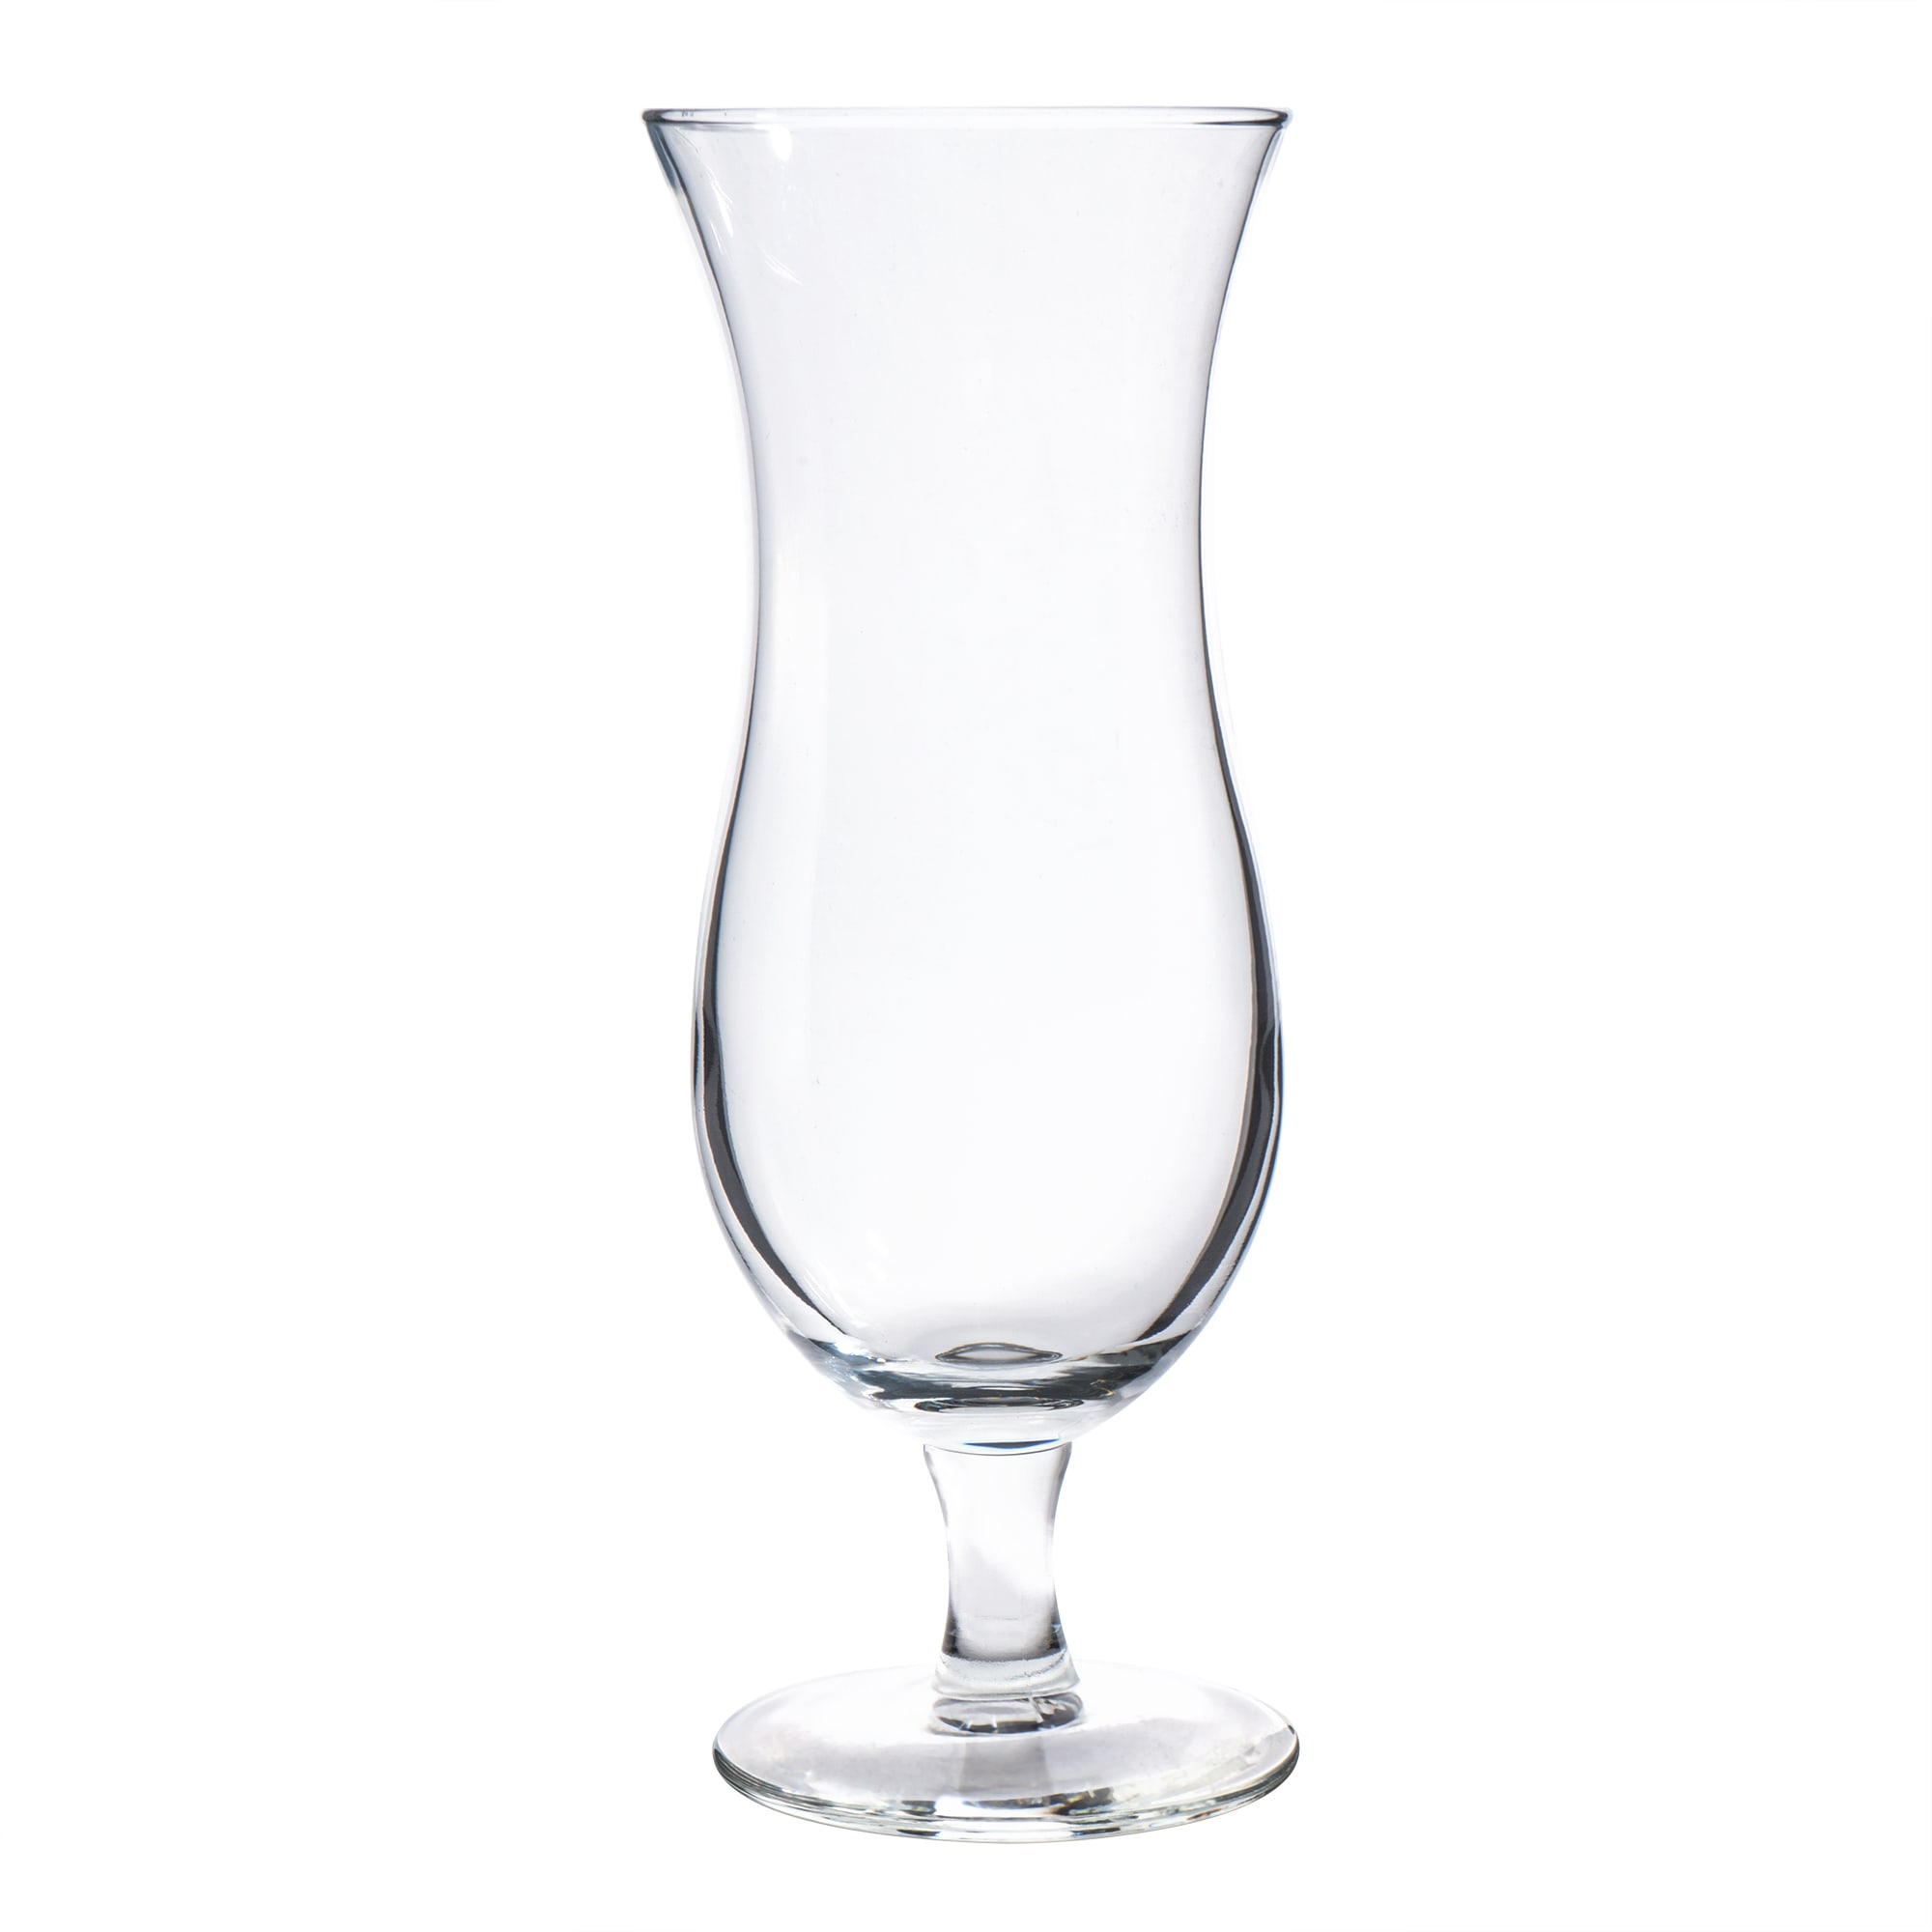 Libbey 3617 15-oz Hurricane Cyclone Glass - Safedge Rim ...